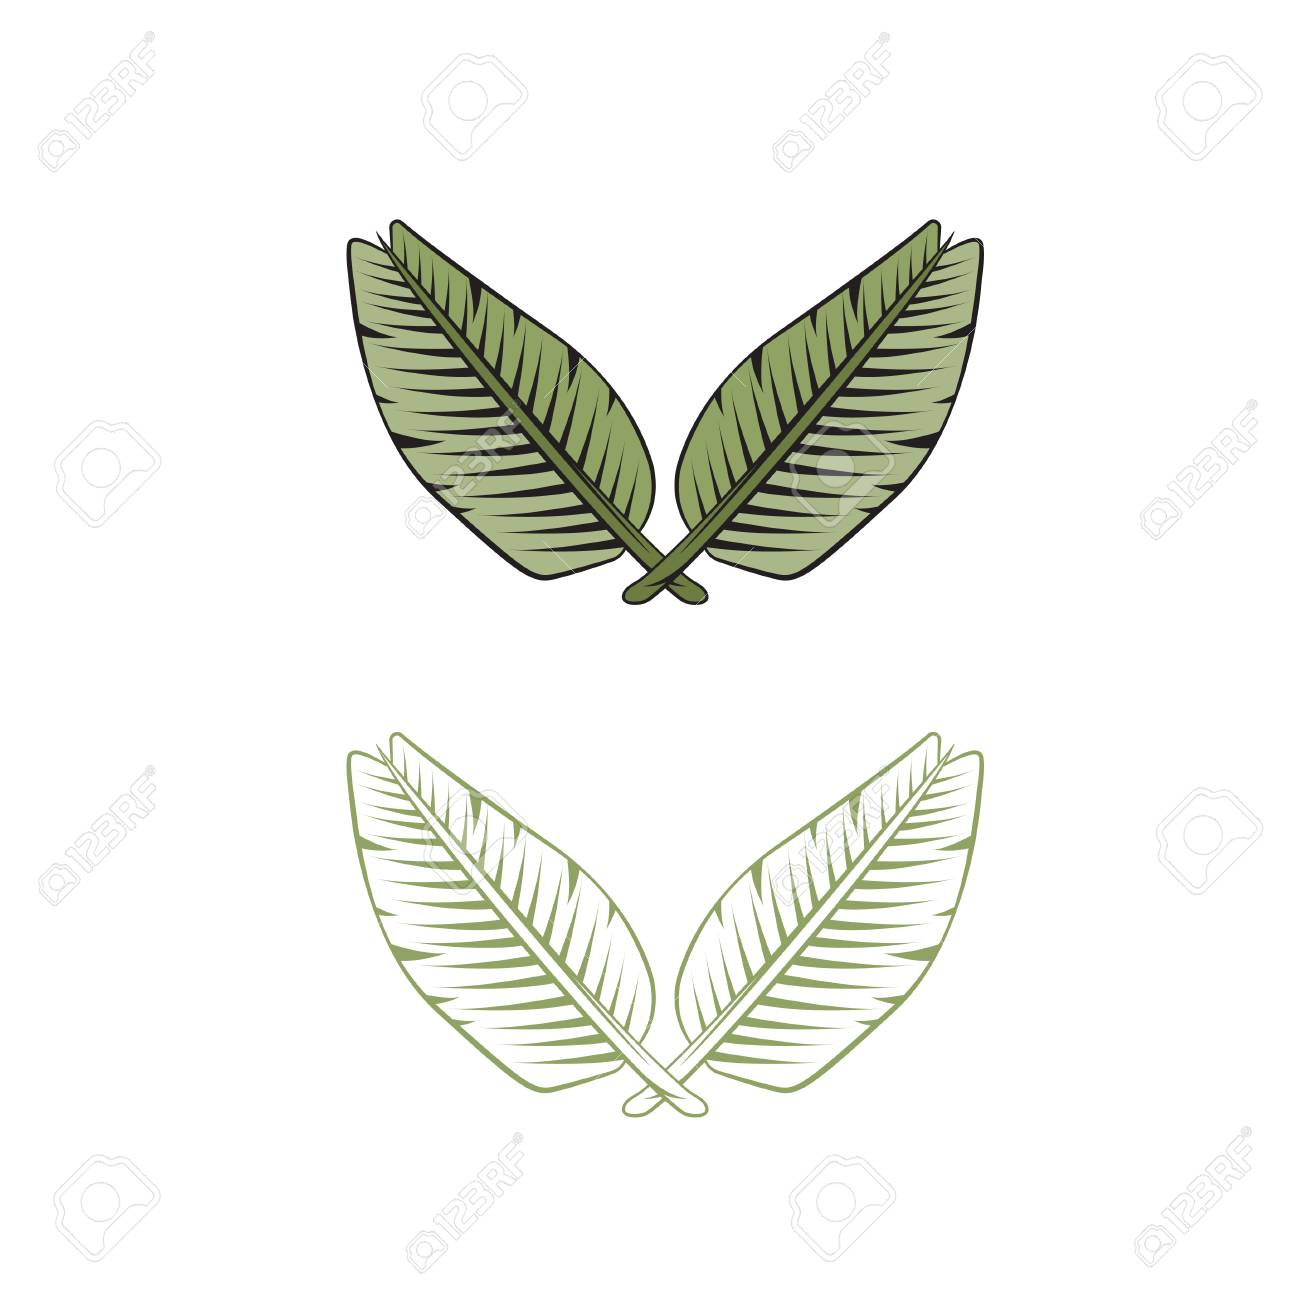 Two Crossed Leaves Of Palm Tree Vector Design Template Royalty Free